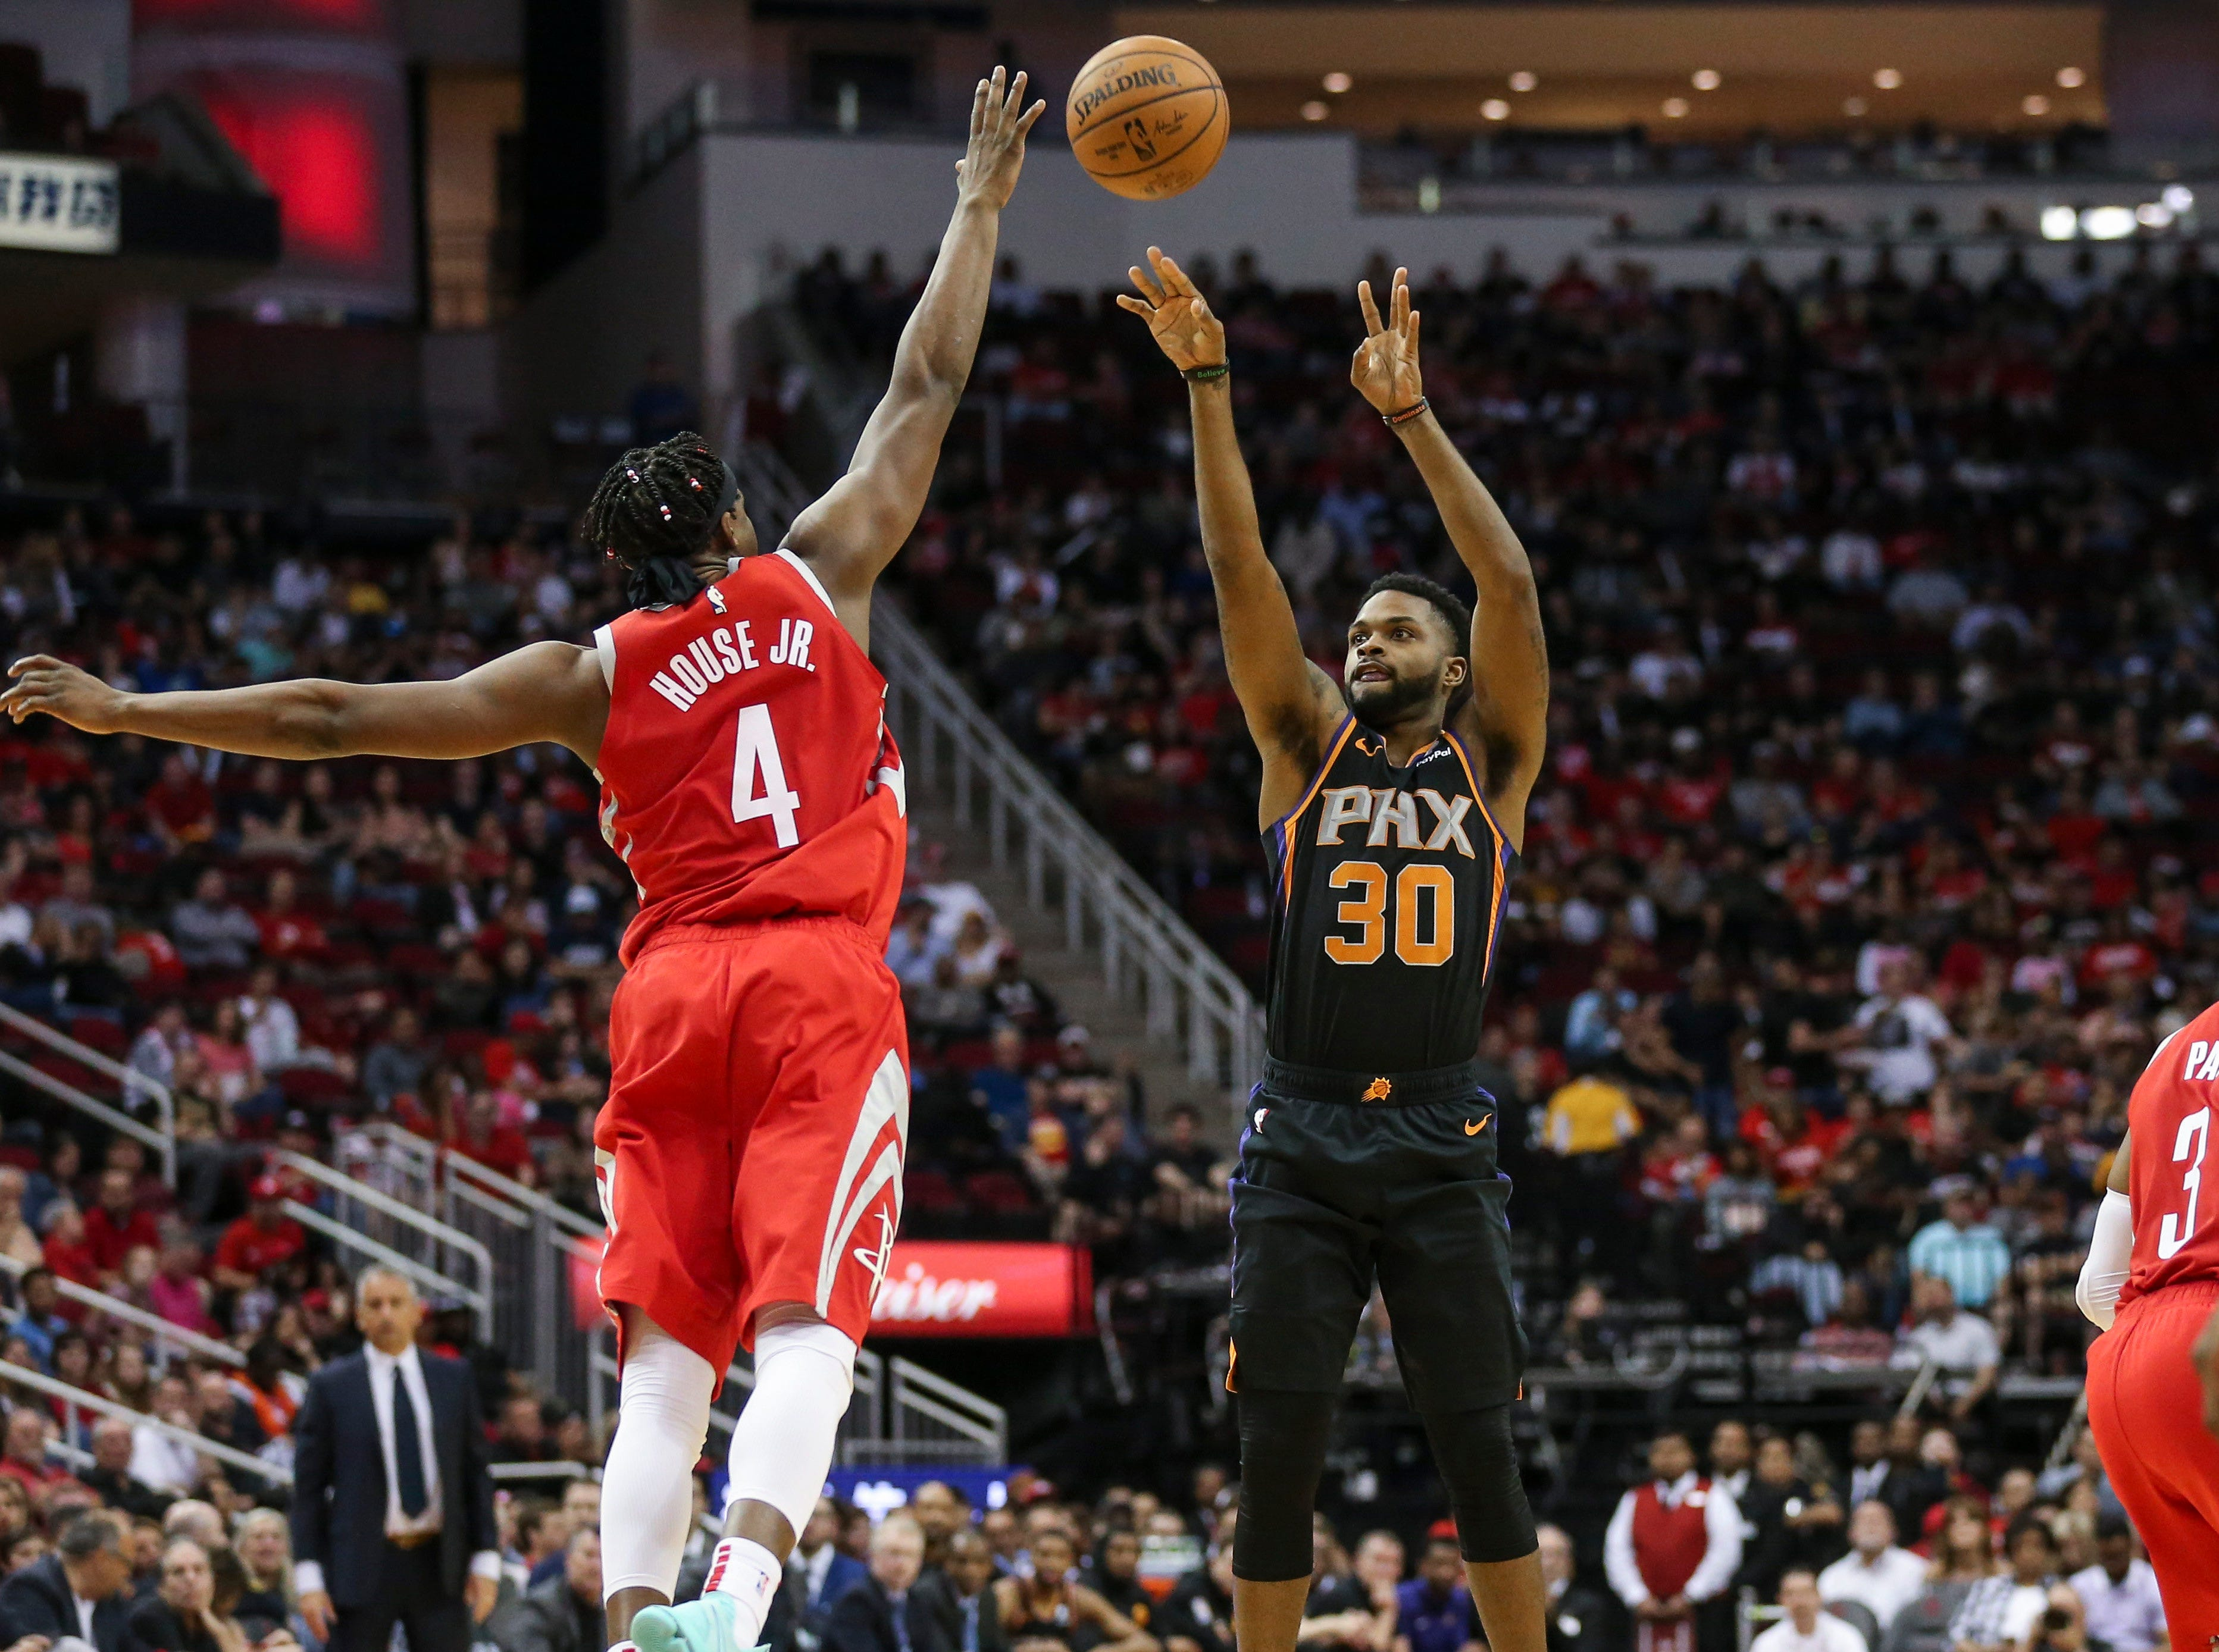 Apr 7, 2019; Houston, TX, USA; Phoenix Suns guard Troy Daniels (30) shoots the ball against Houston Rockets forward Danuel House Jr. (4) during the third quarter at Toyota Center. Mandatory Credit: Troy Taormina-USA TODAY Sports